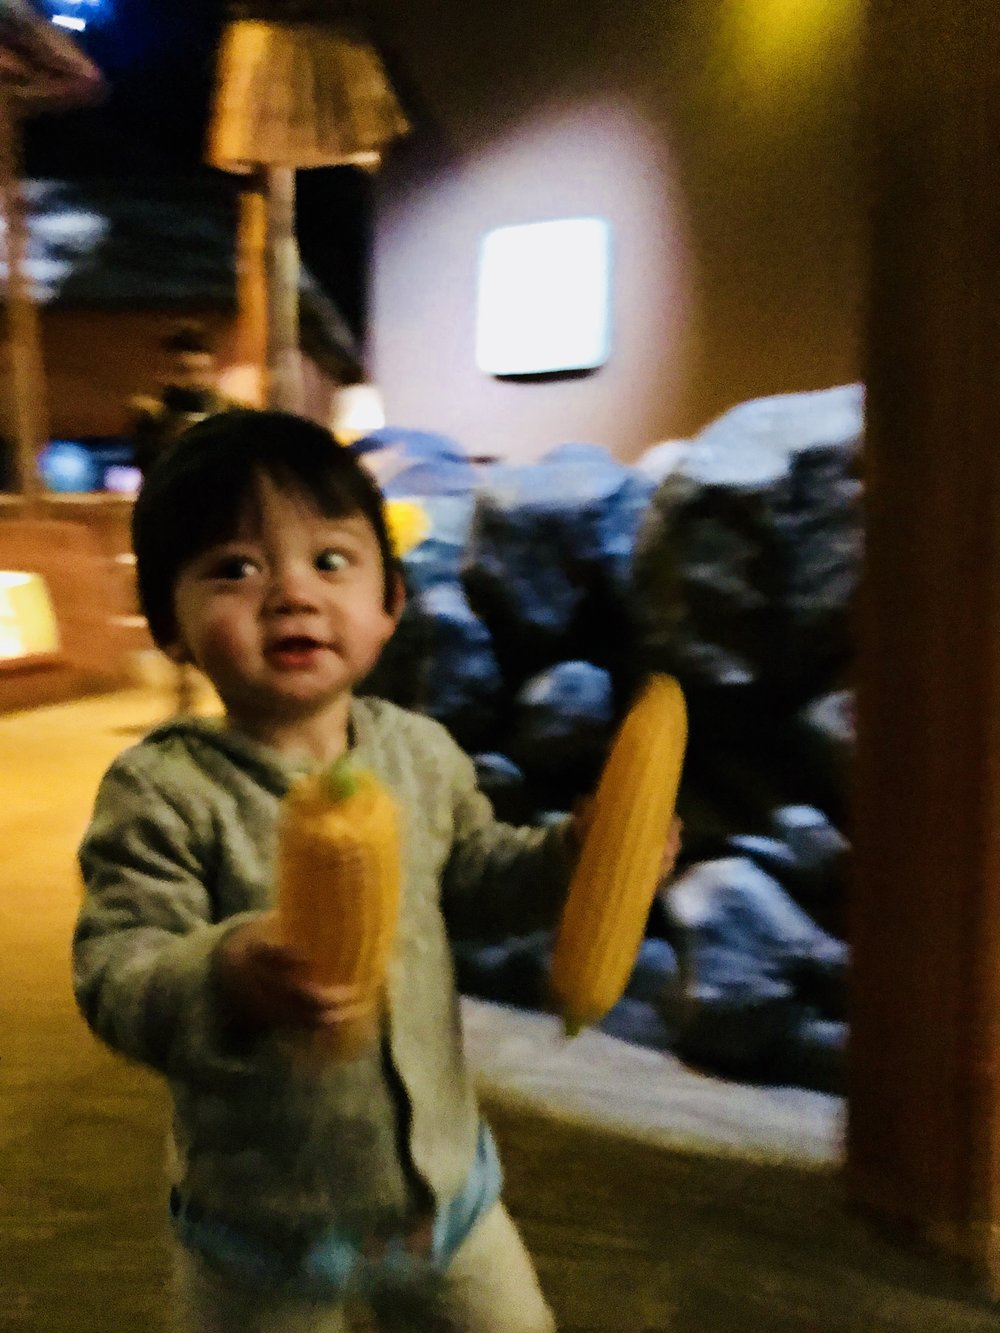 Lewis loved the baskets of corn and wanted to show them off to all the museum visitors. So hard to get a clear shot of him when he is excited about corn.